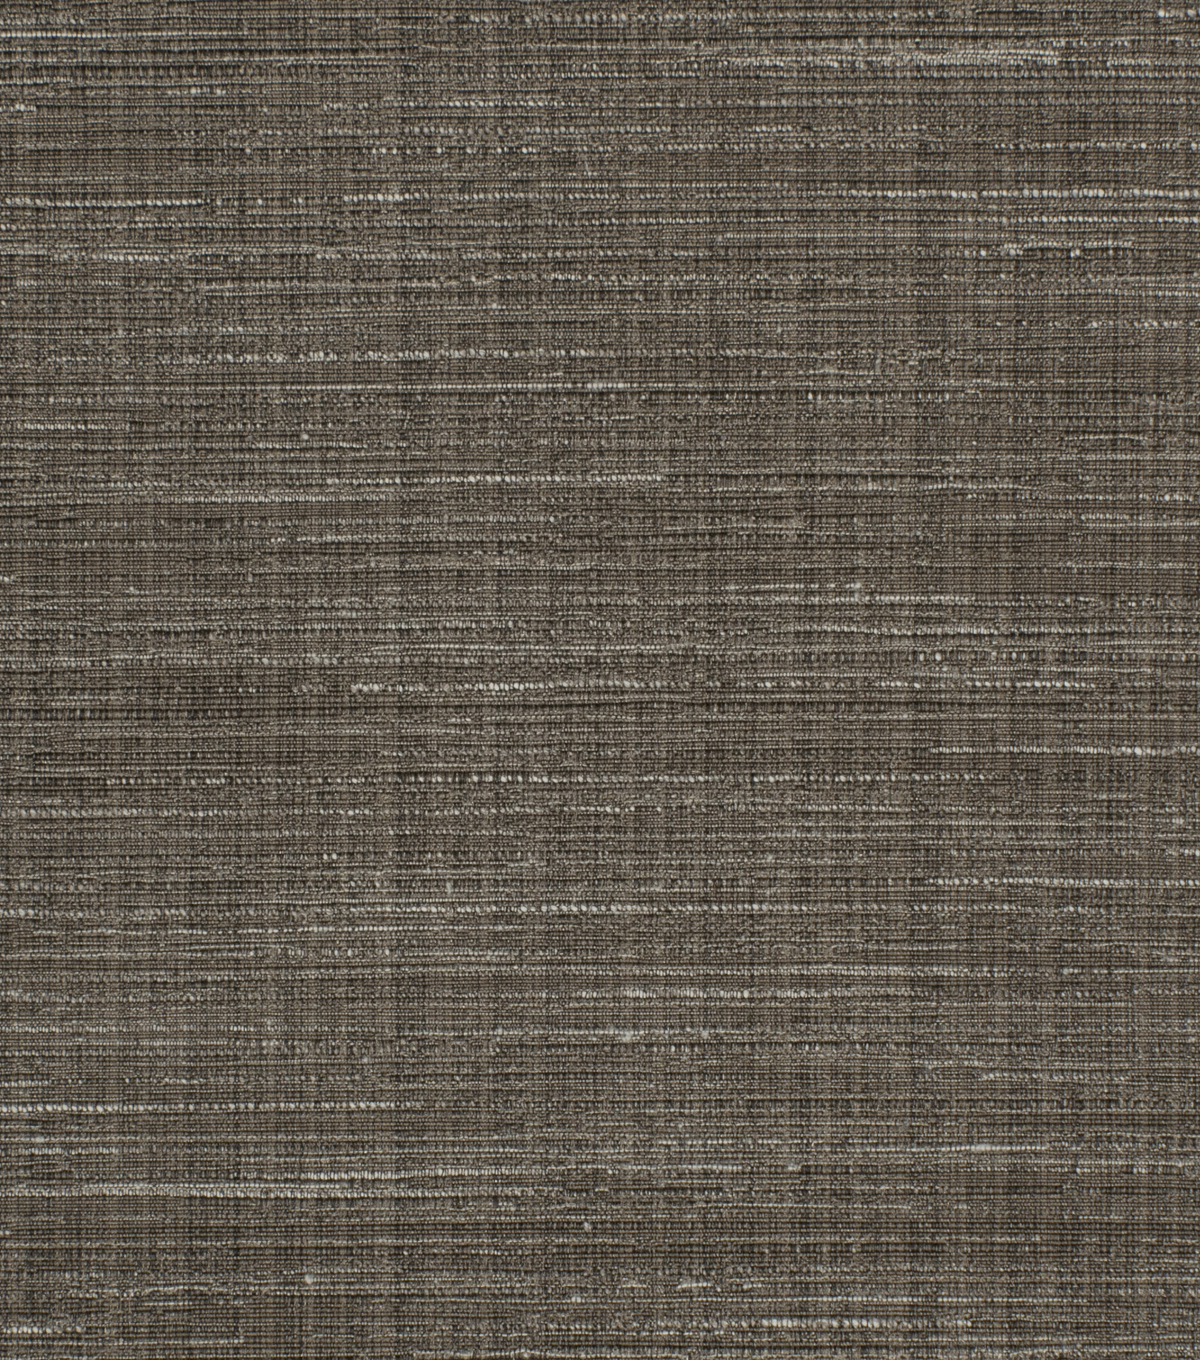 Eaton Square Multi-Purpose Decor Fabric 55\u0022-Driskill/Tiramisu